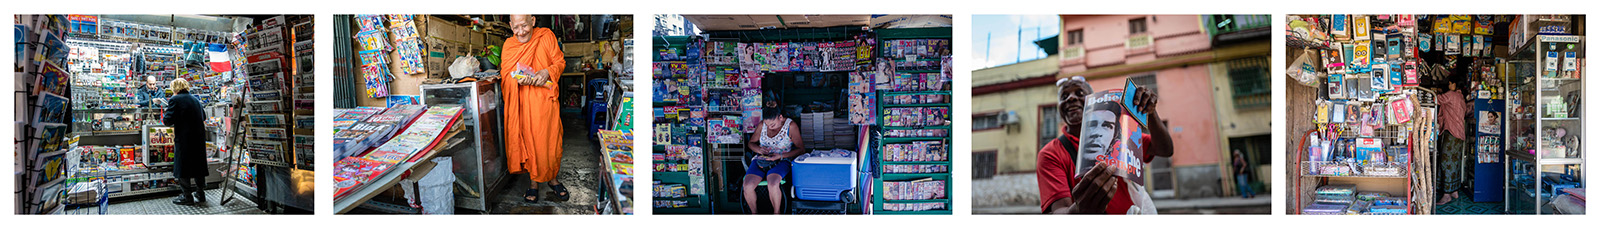 News stands. Paris 2018, Bangkok 2015, Los Angeles 2016, Havana 2017, Myanmar 2015